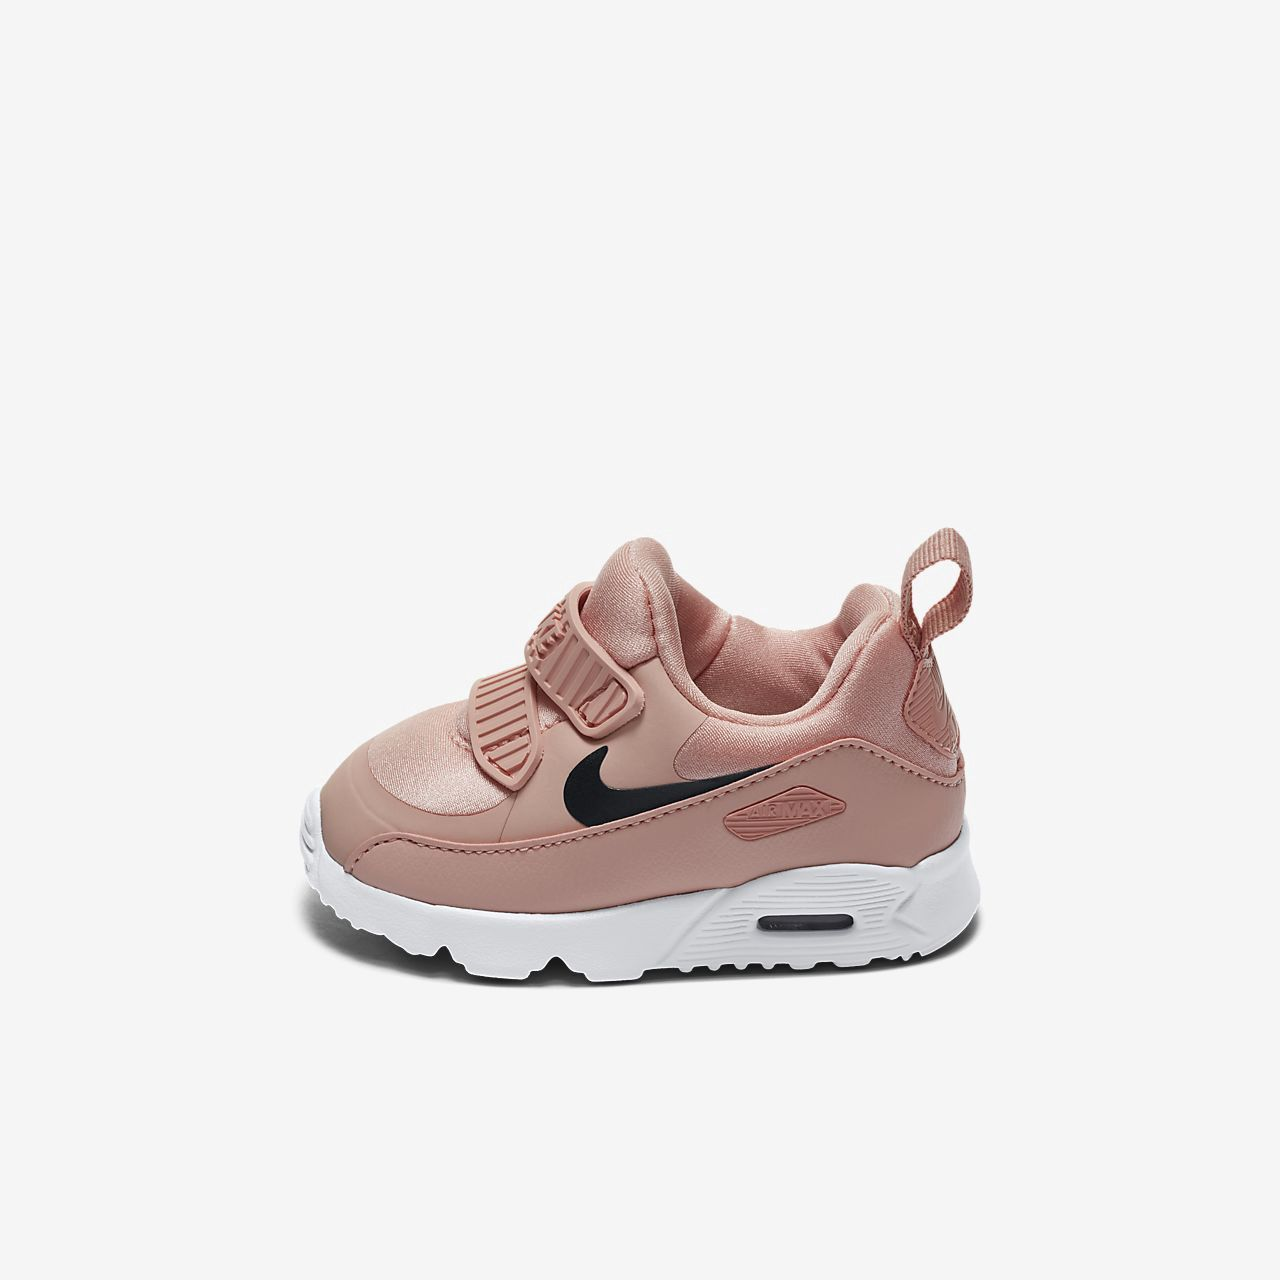 Nike Air Max Tiny 90 InfantToddler Shoe 8C Coral | Nike